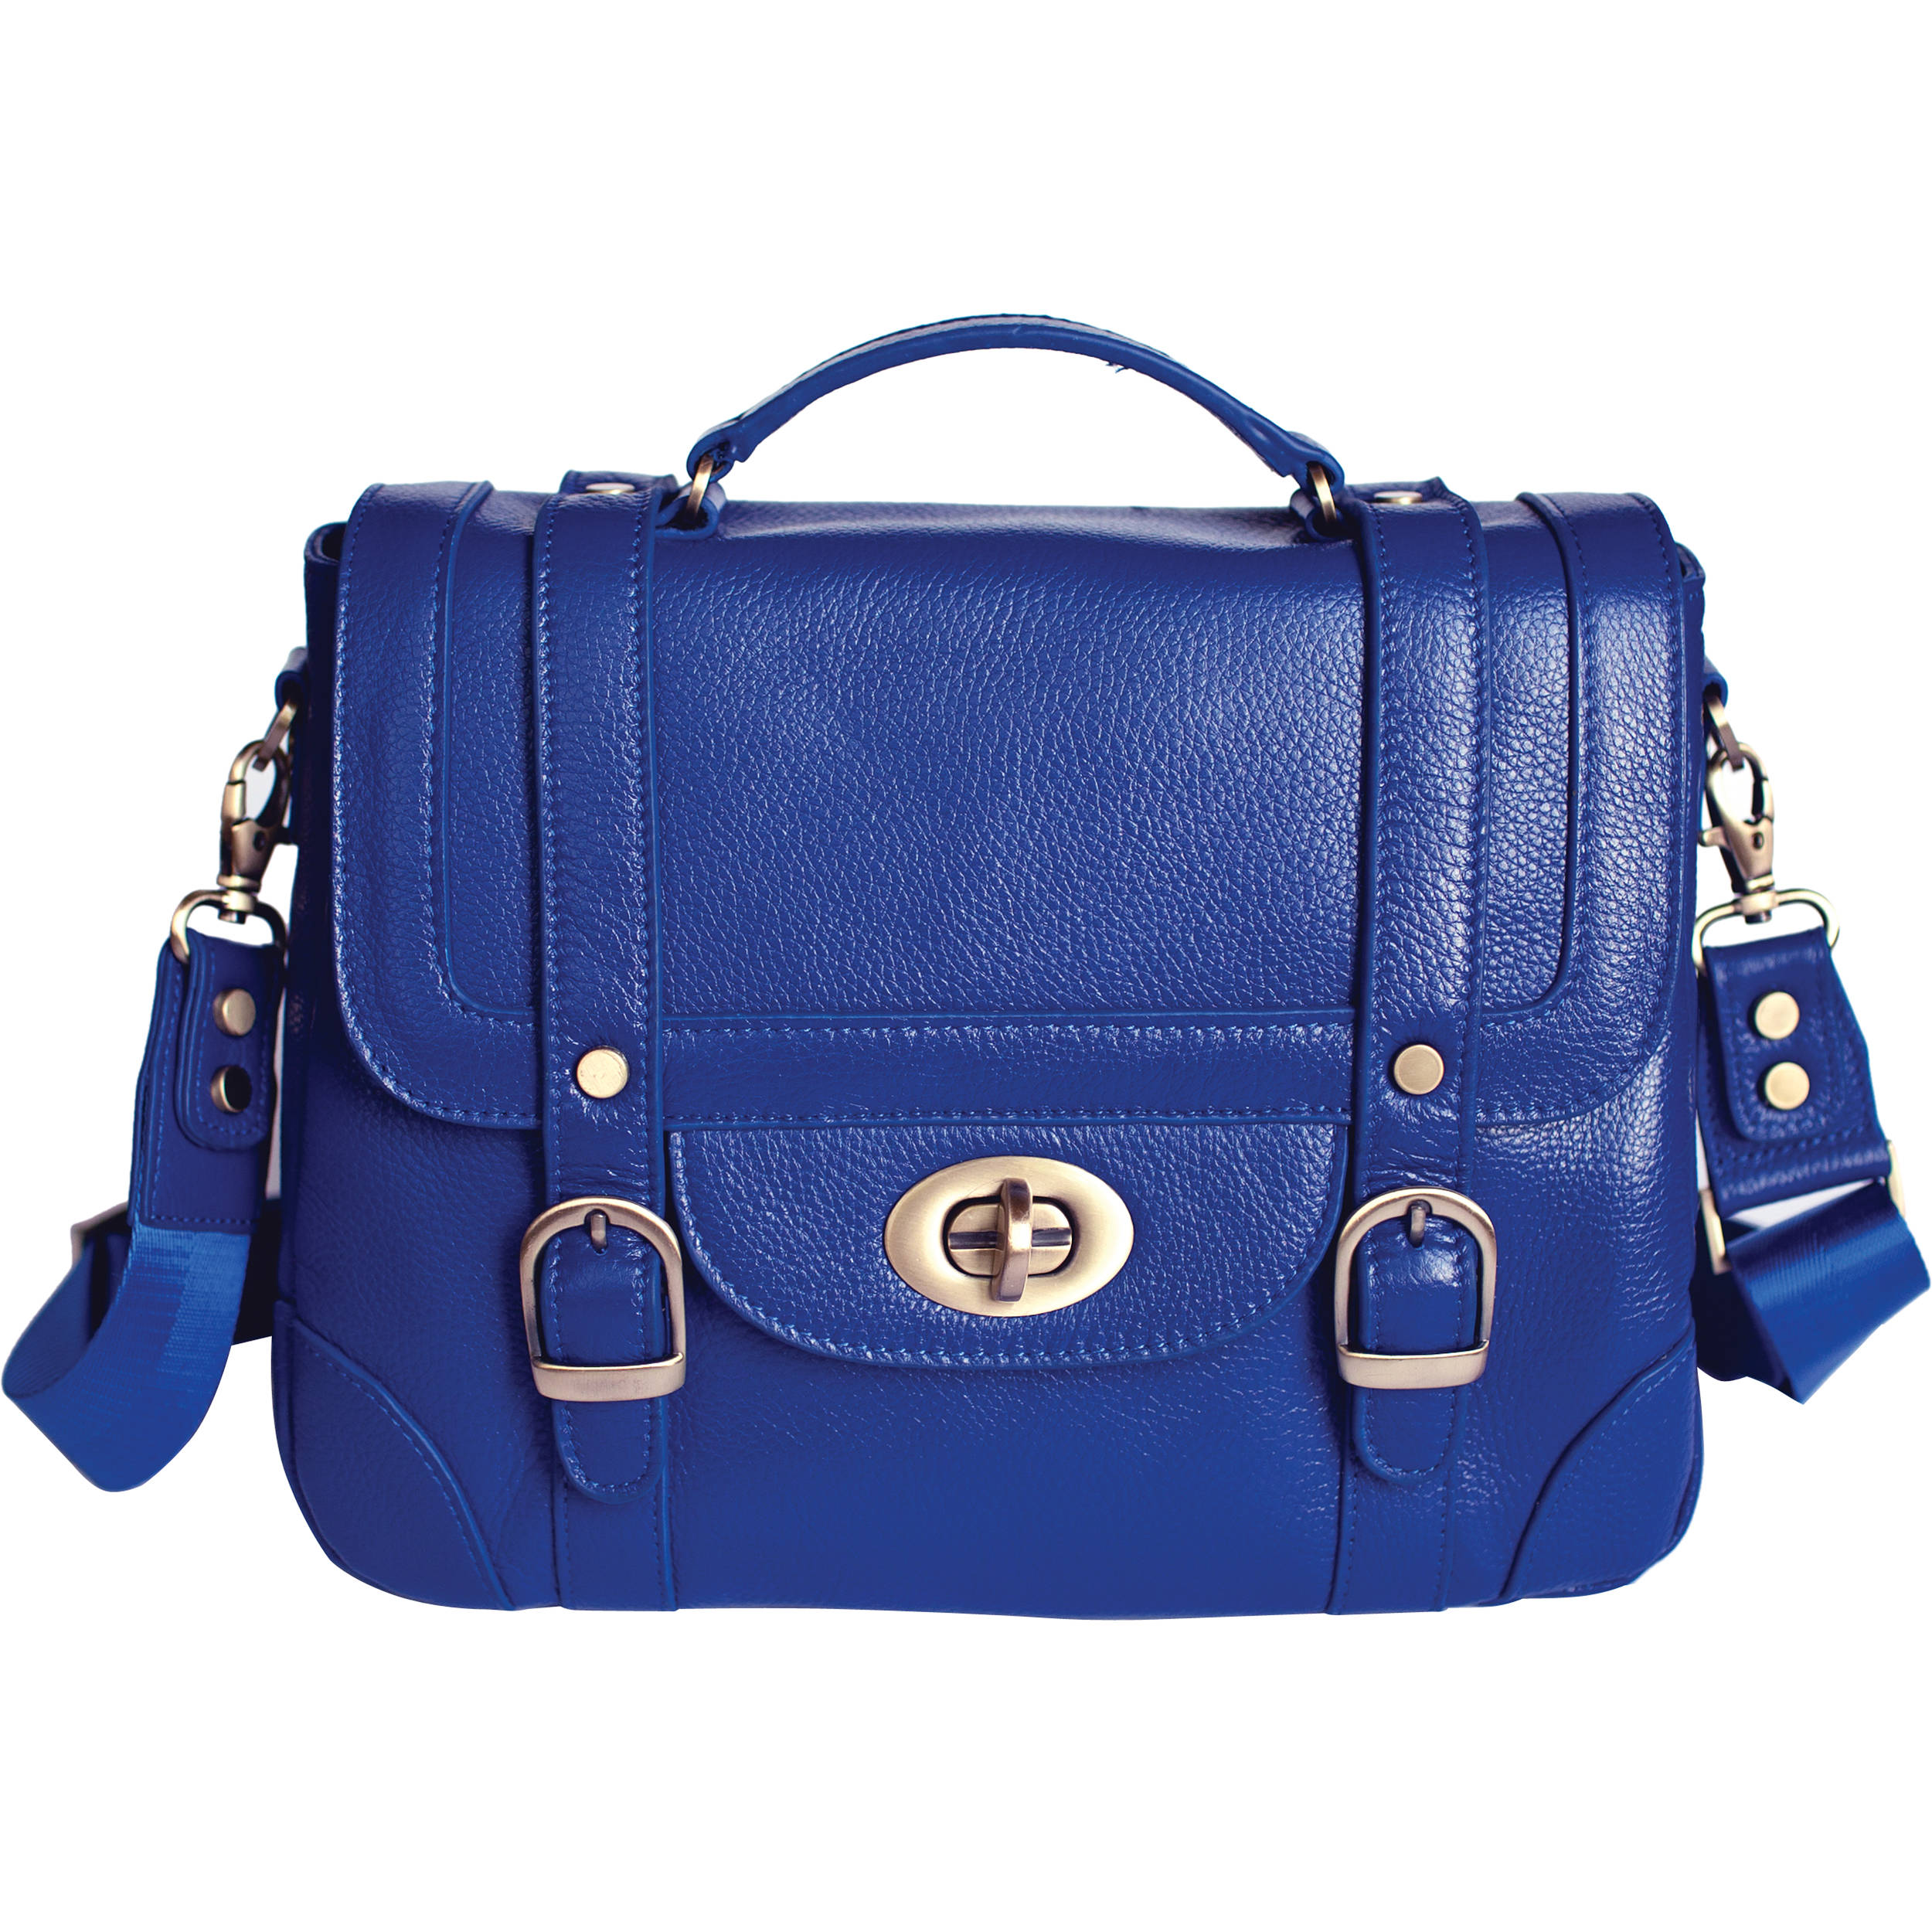 Ketti Handbags The School Camera Bag Electric Blue